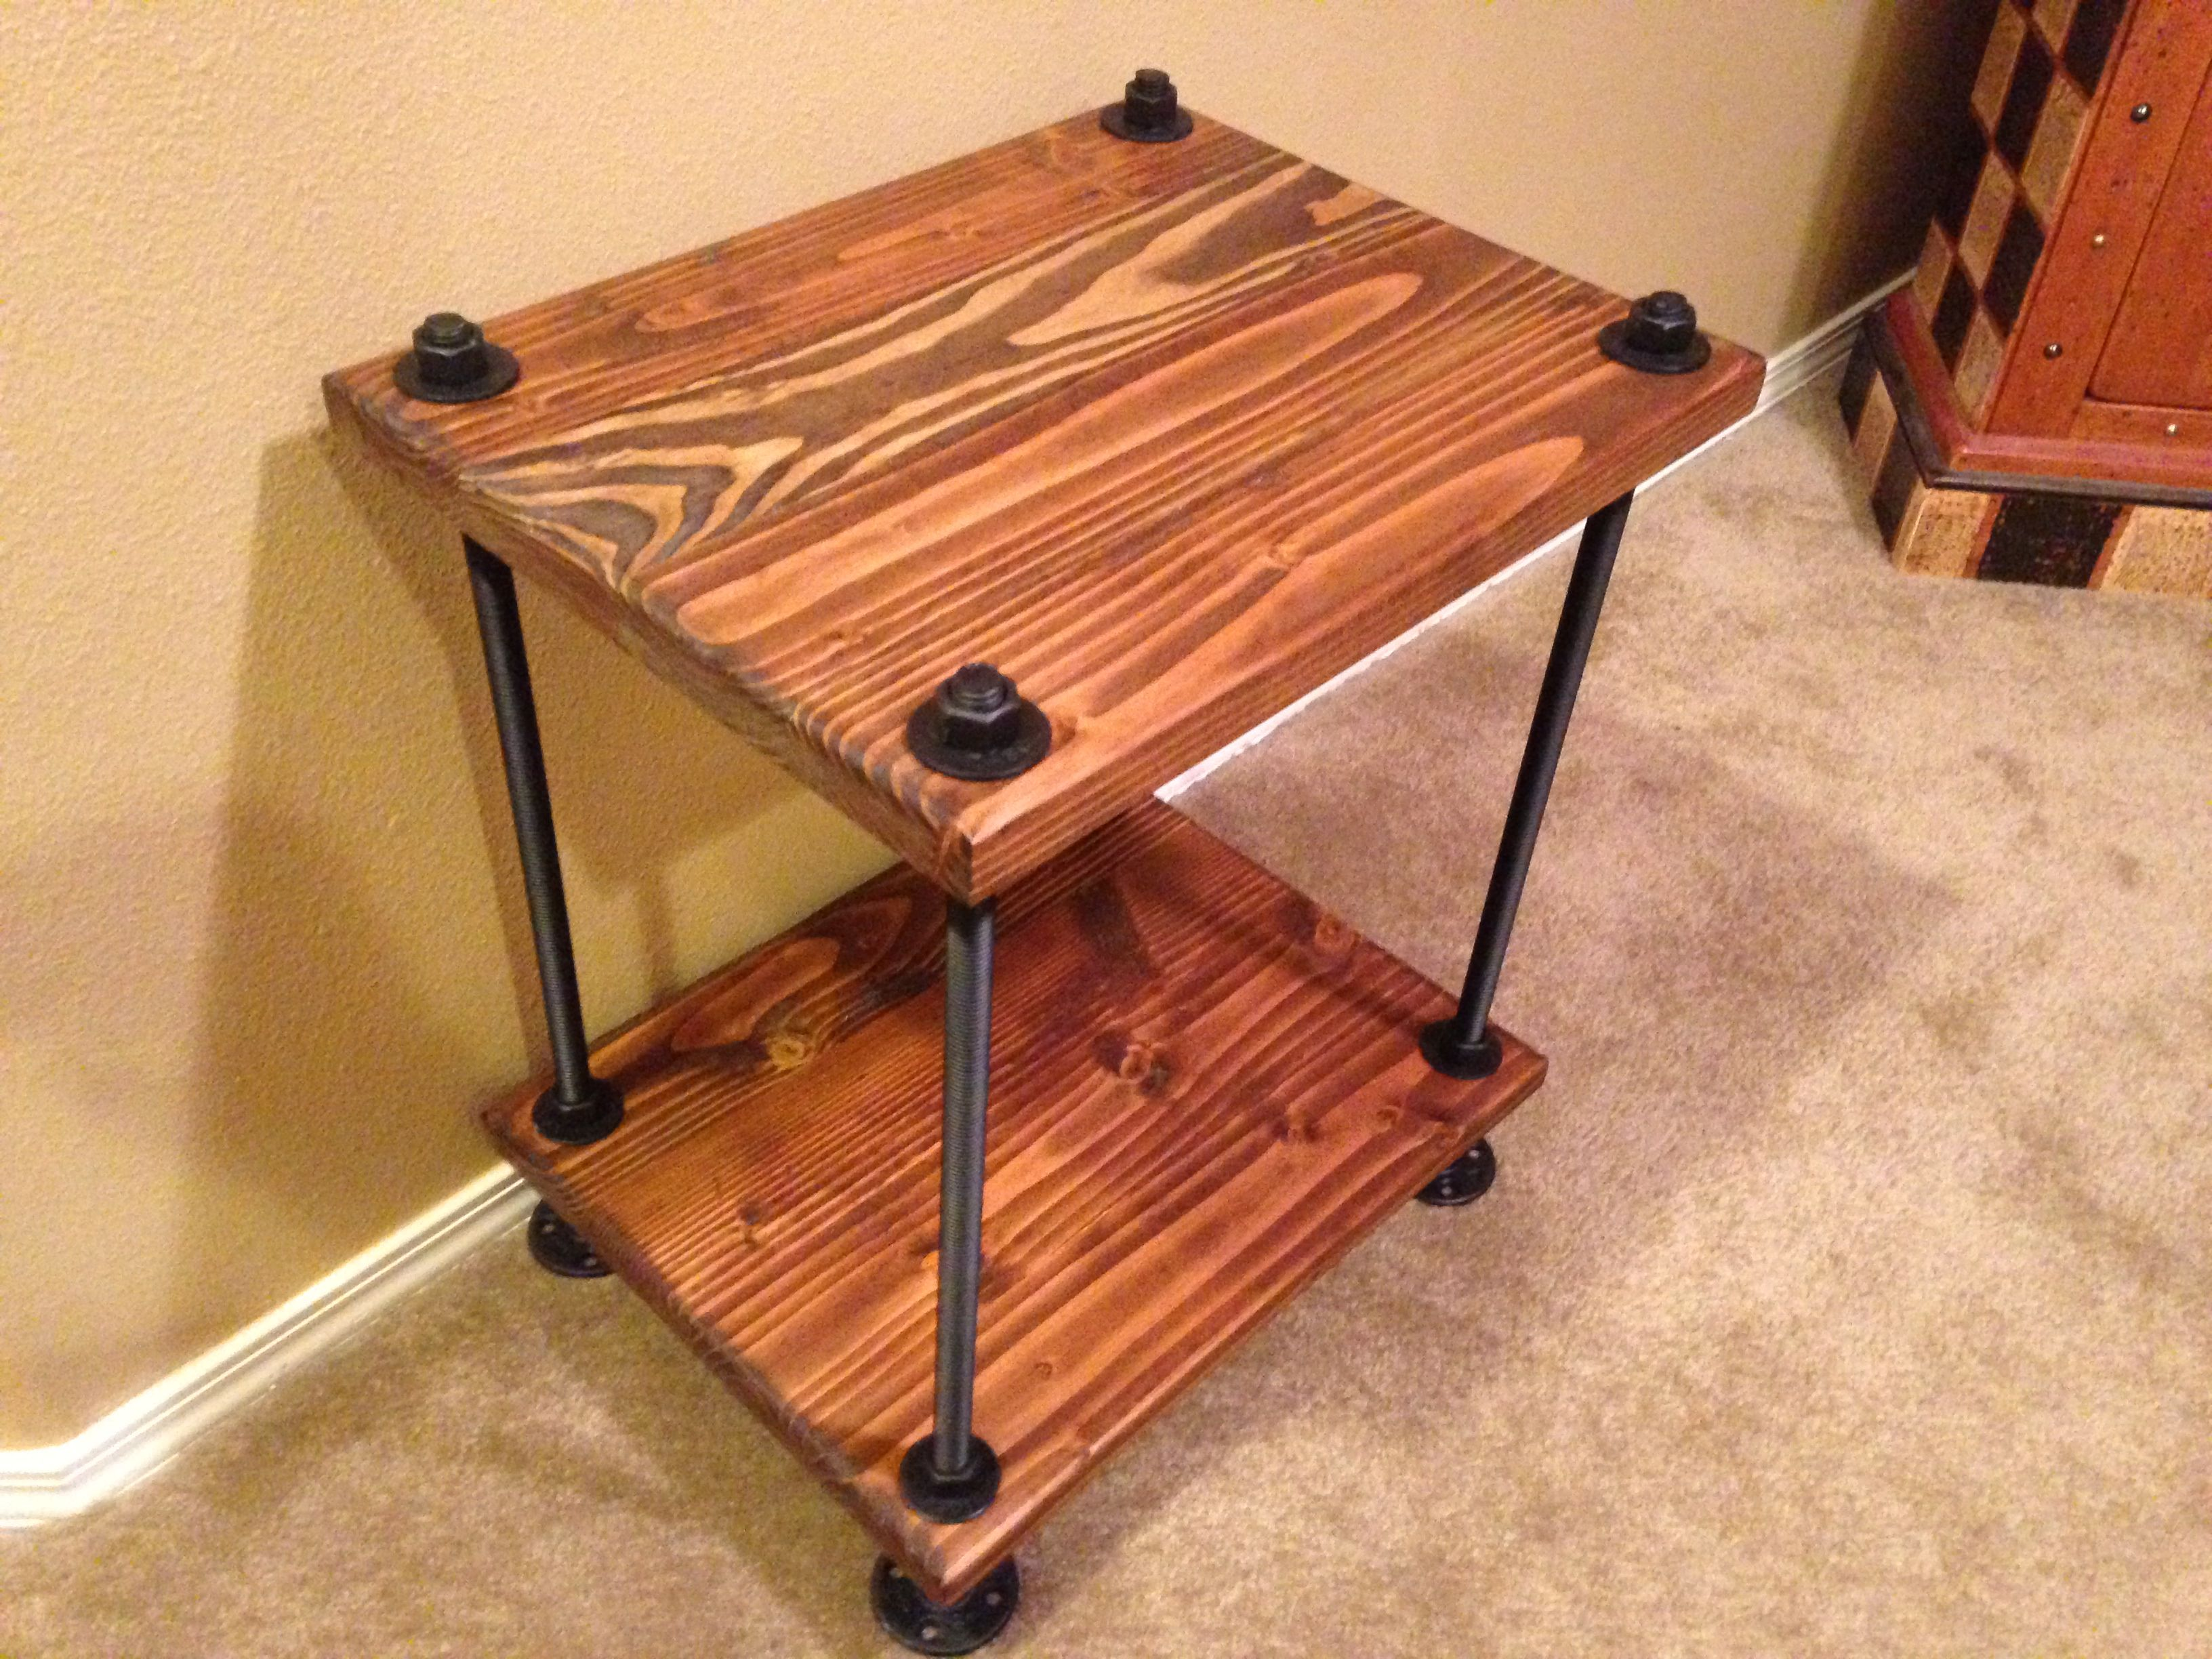 Gentil Reclaimed Wood Industrial Style End Table With Threaded Rod Frame. Under  The Table Woodworks